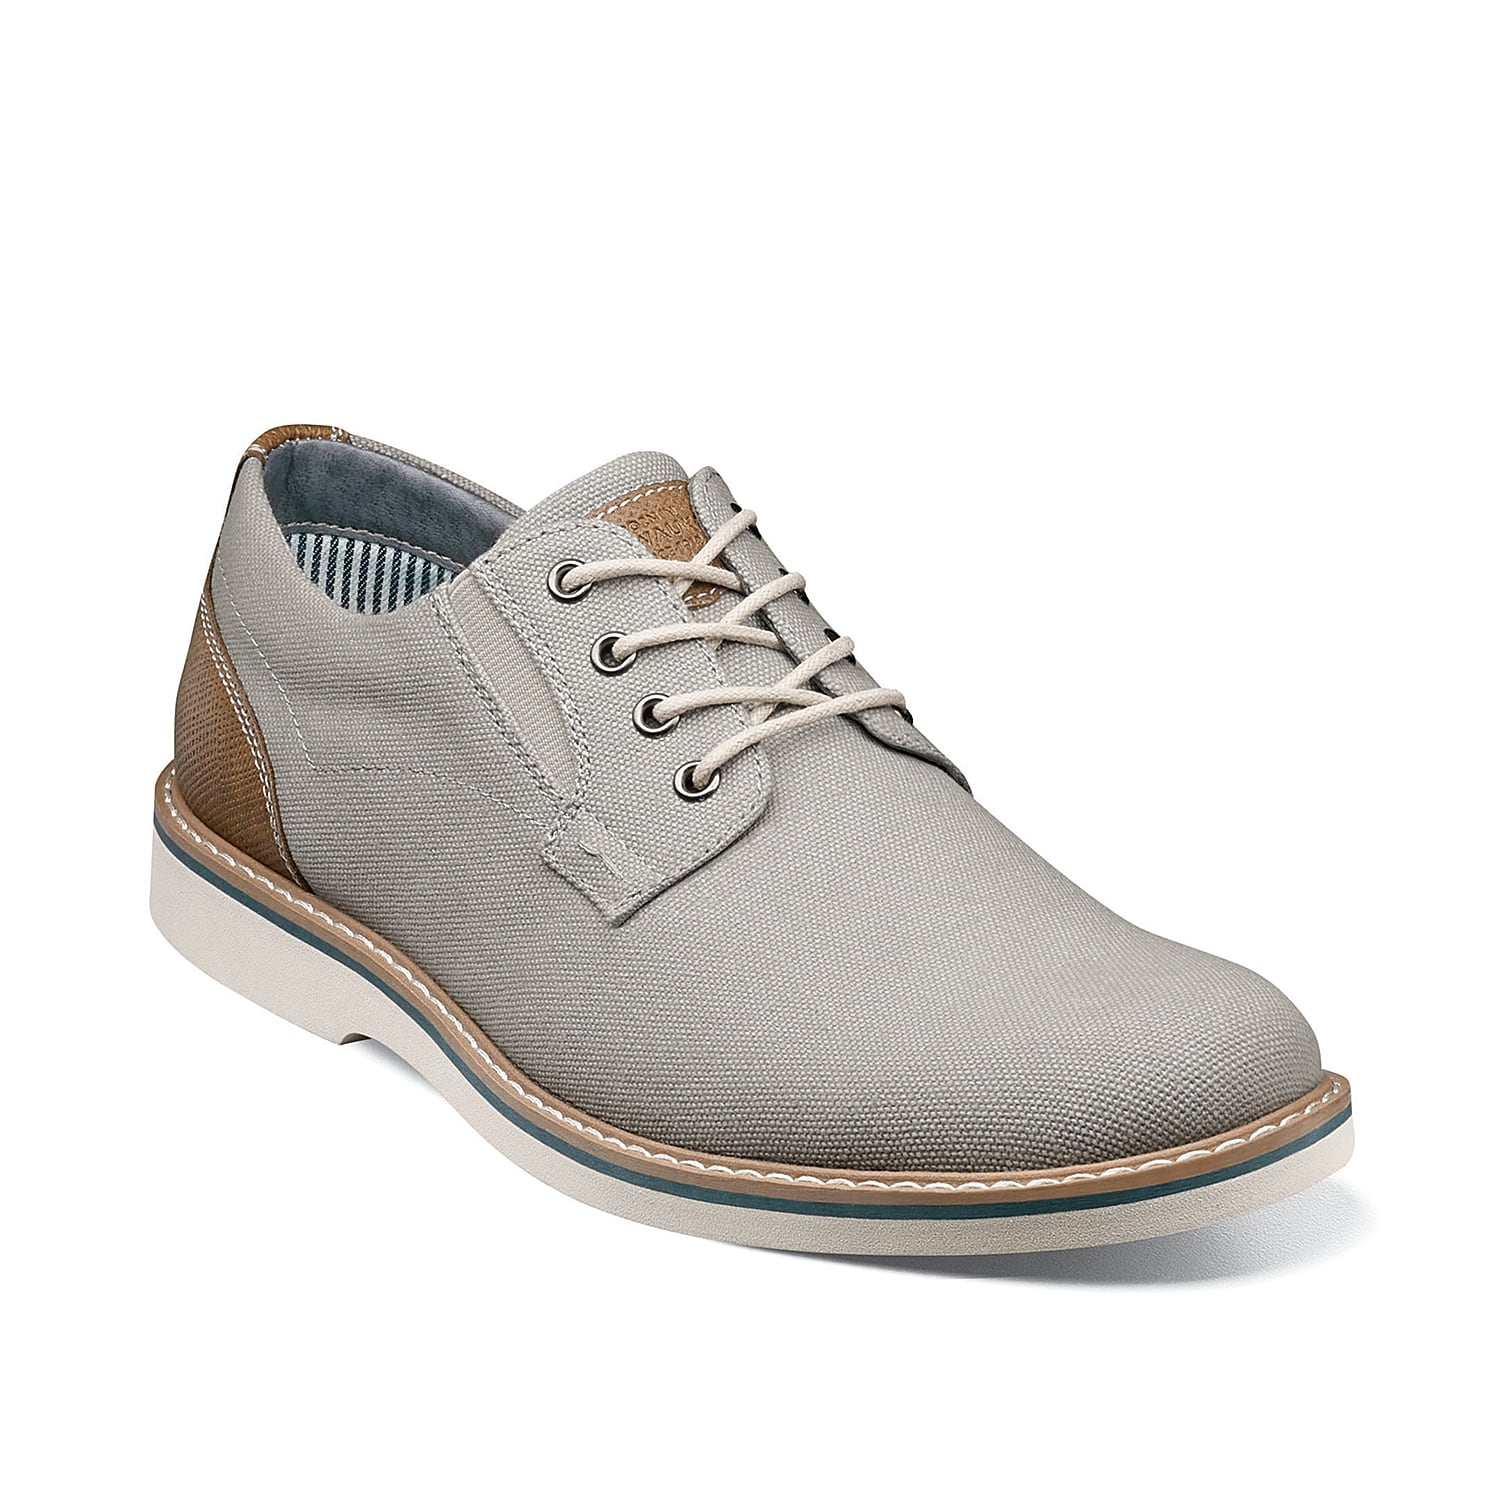 The Barclay oxford from Nunn Bush adds a refined feel to any outfit. These lace-ups feature a textured design for extra intrigue and include a memory foam footbed to ensure daylong comfort.